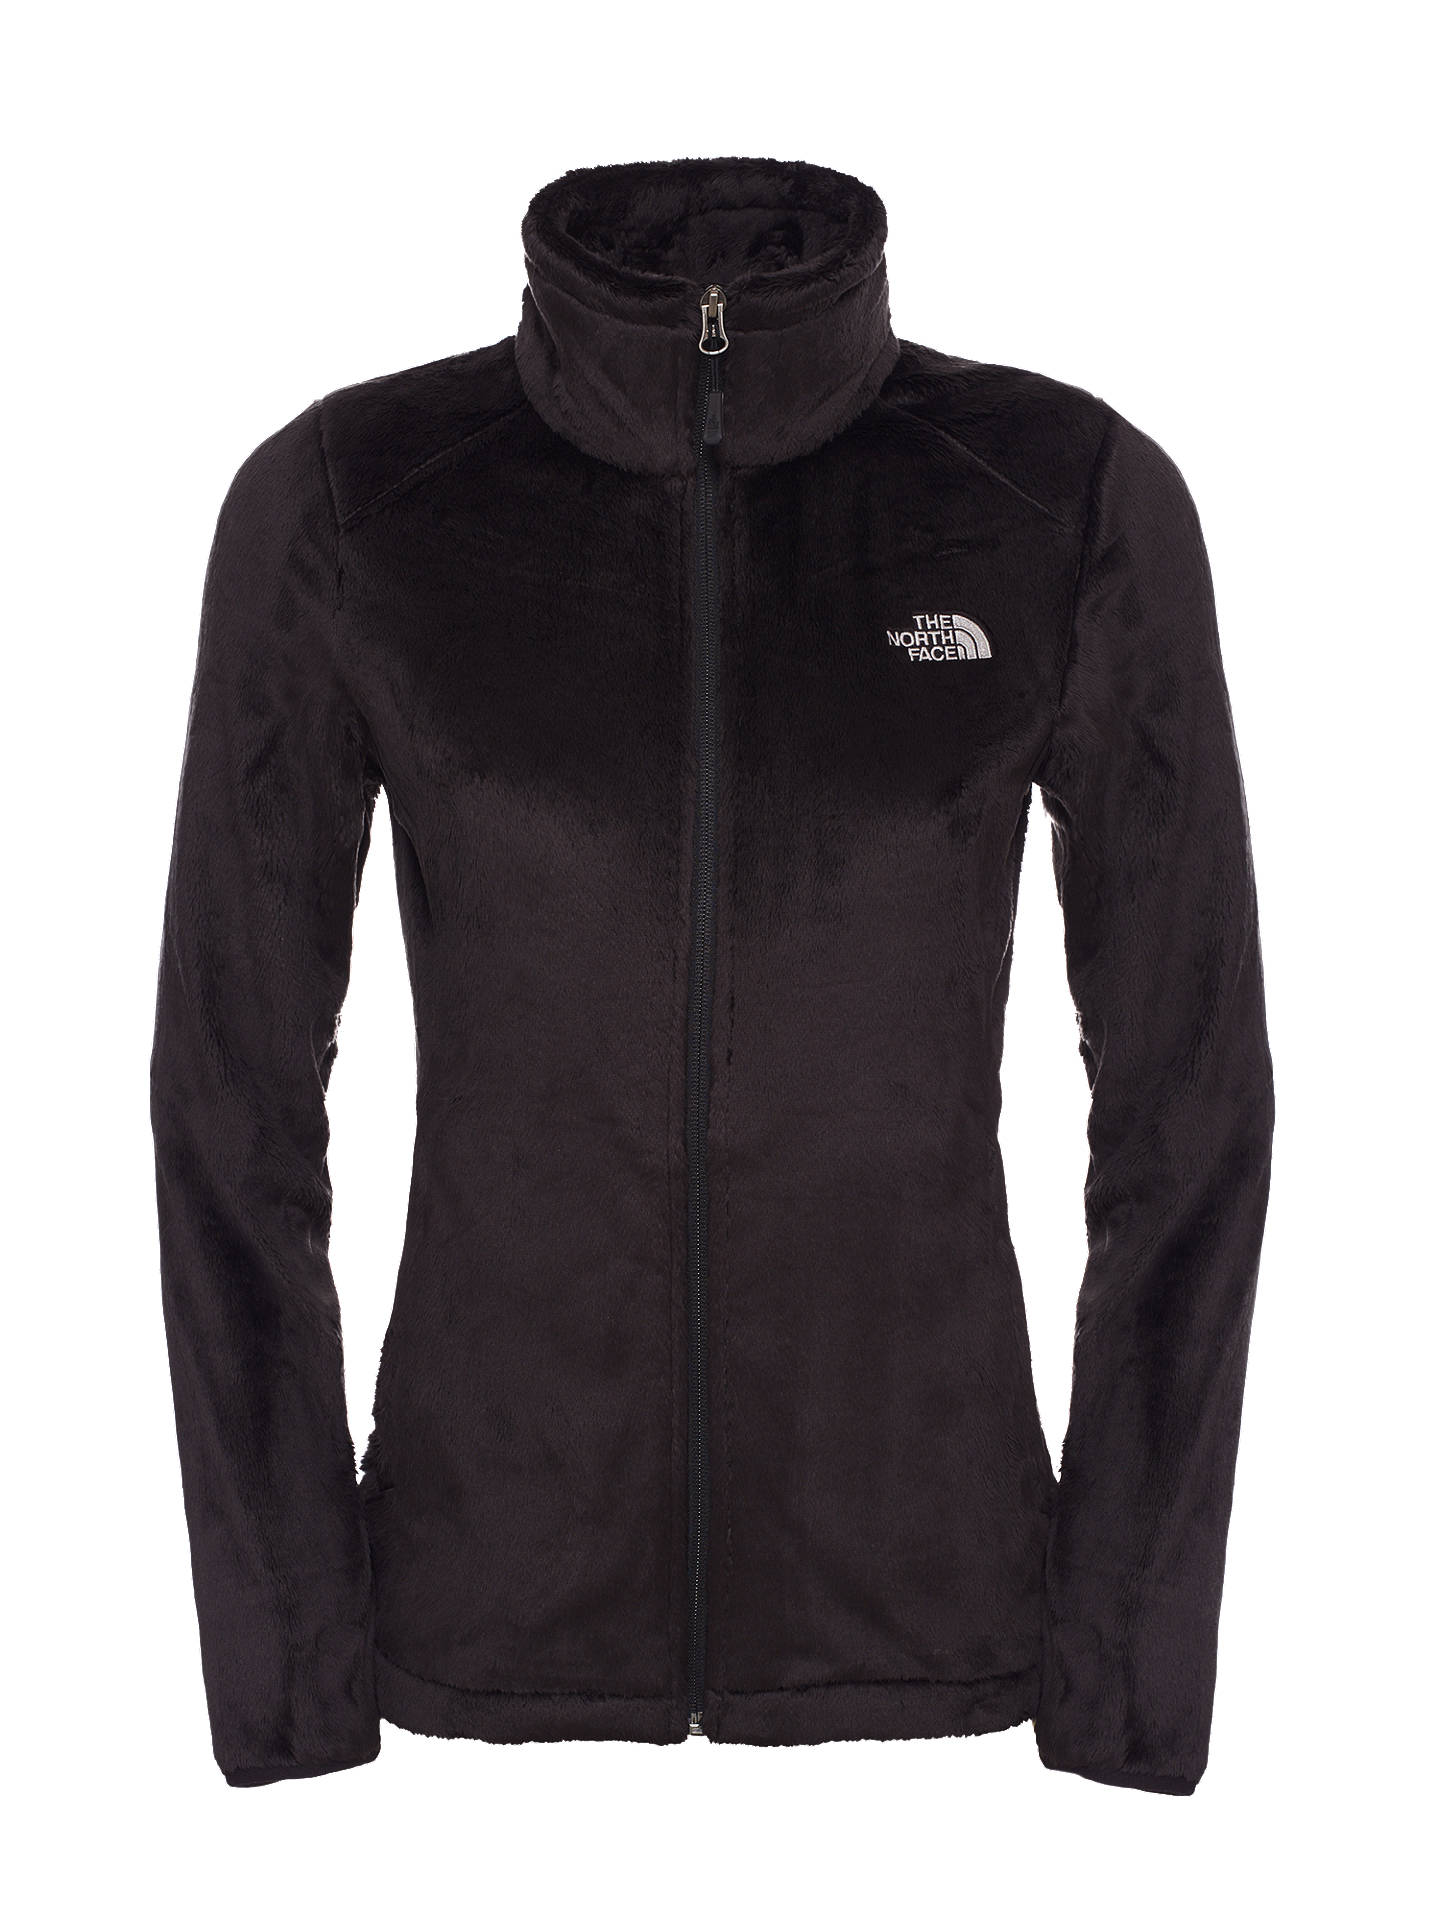 be557a94e The North Face Osito 2 Women's Fleece Jacket at John Lewis & Partners